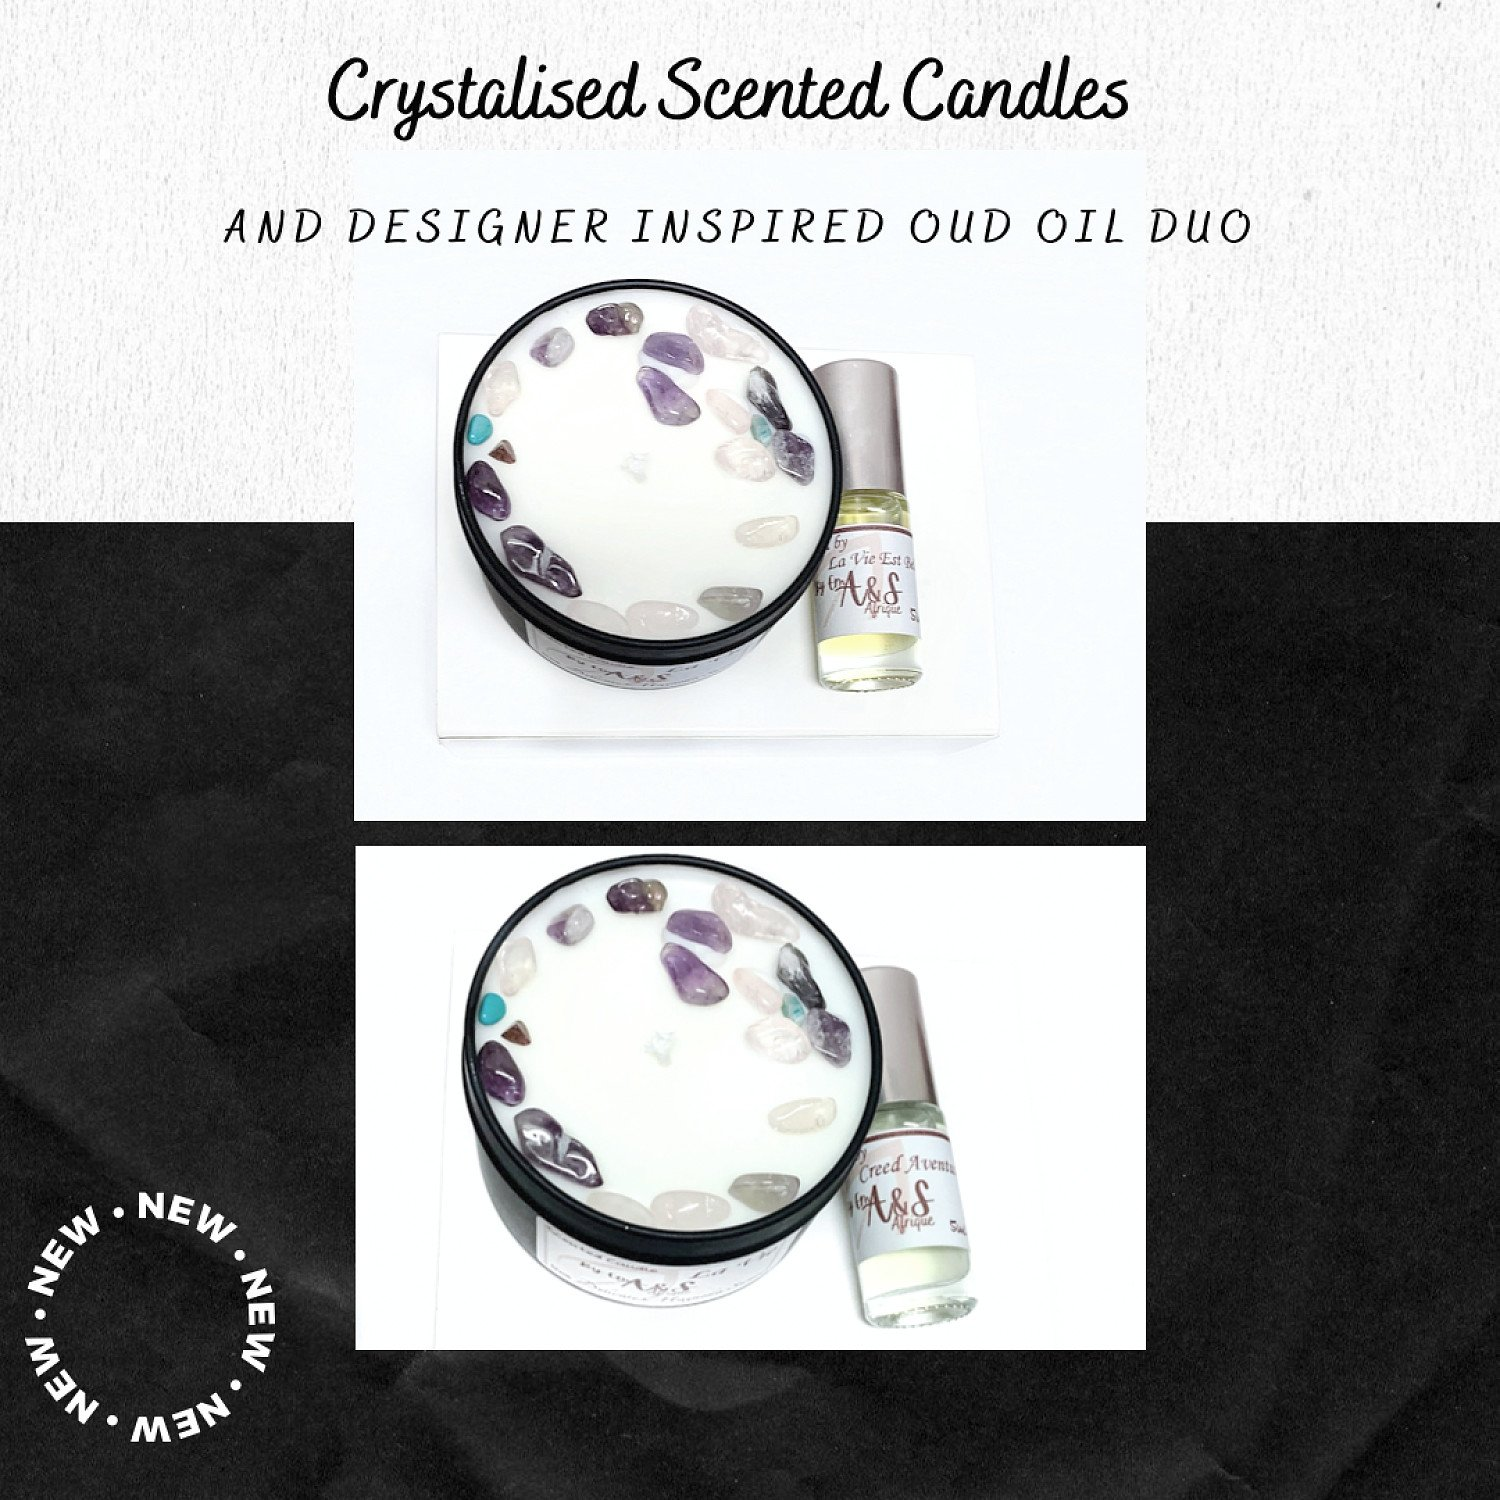 Save 15% on our scented candles and crystal infused scented candles.